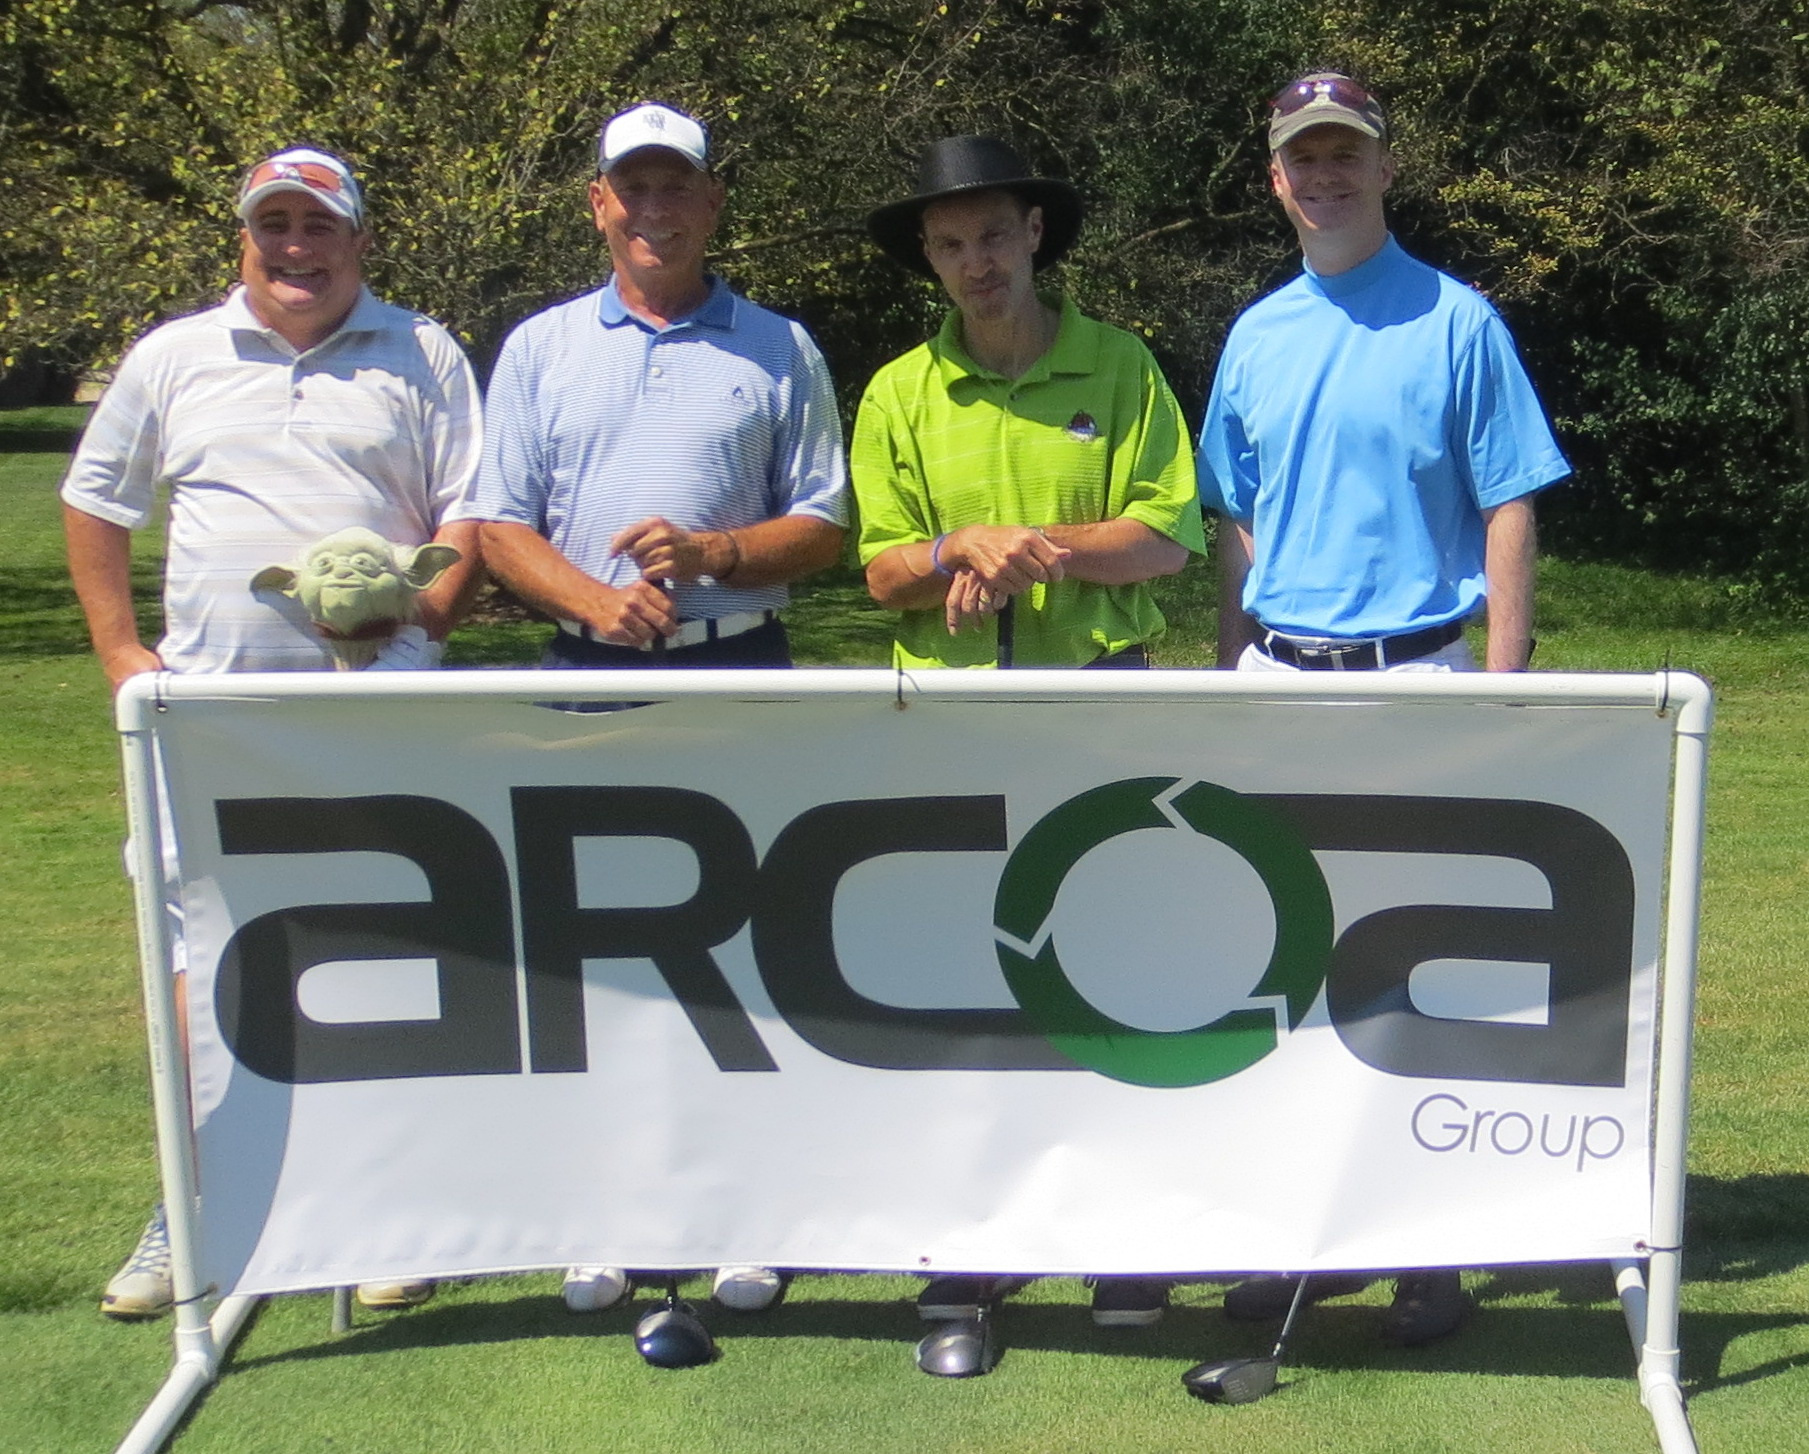 Deerfield Arcoa Team 1